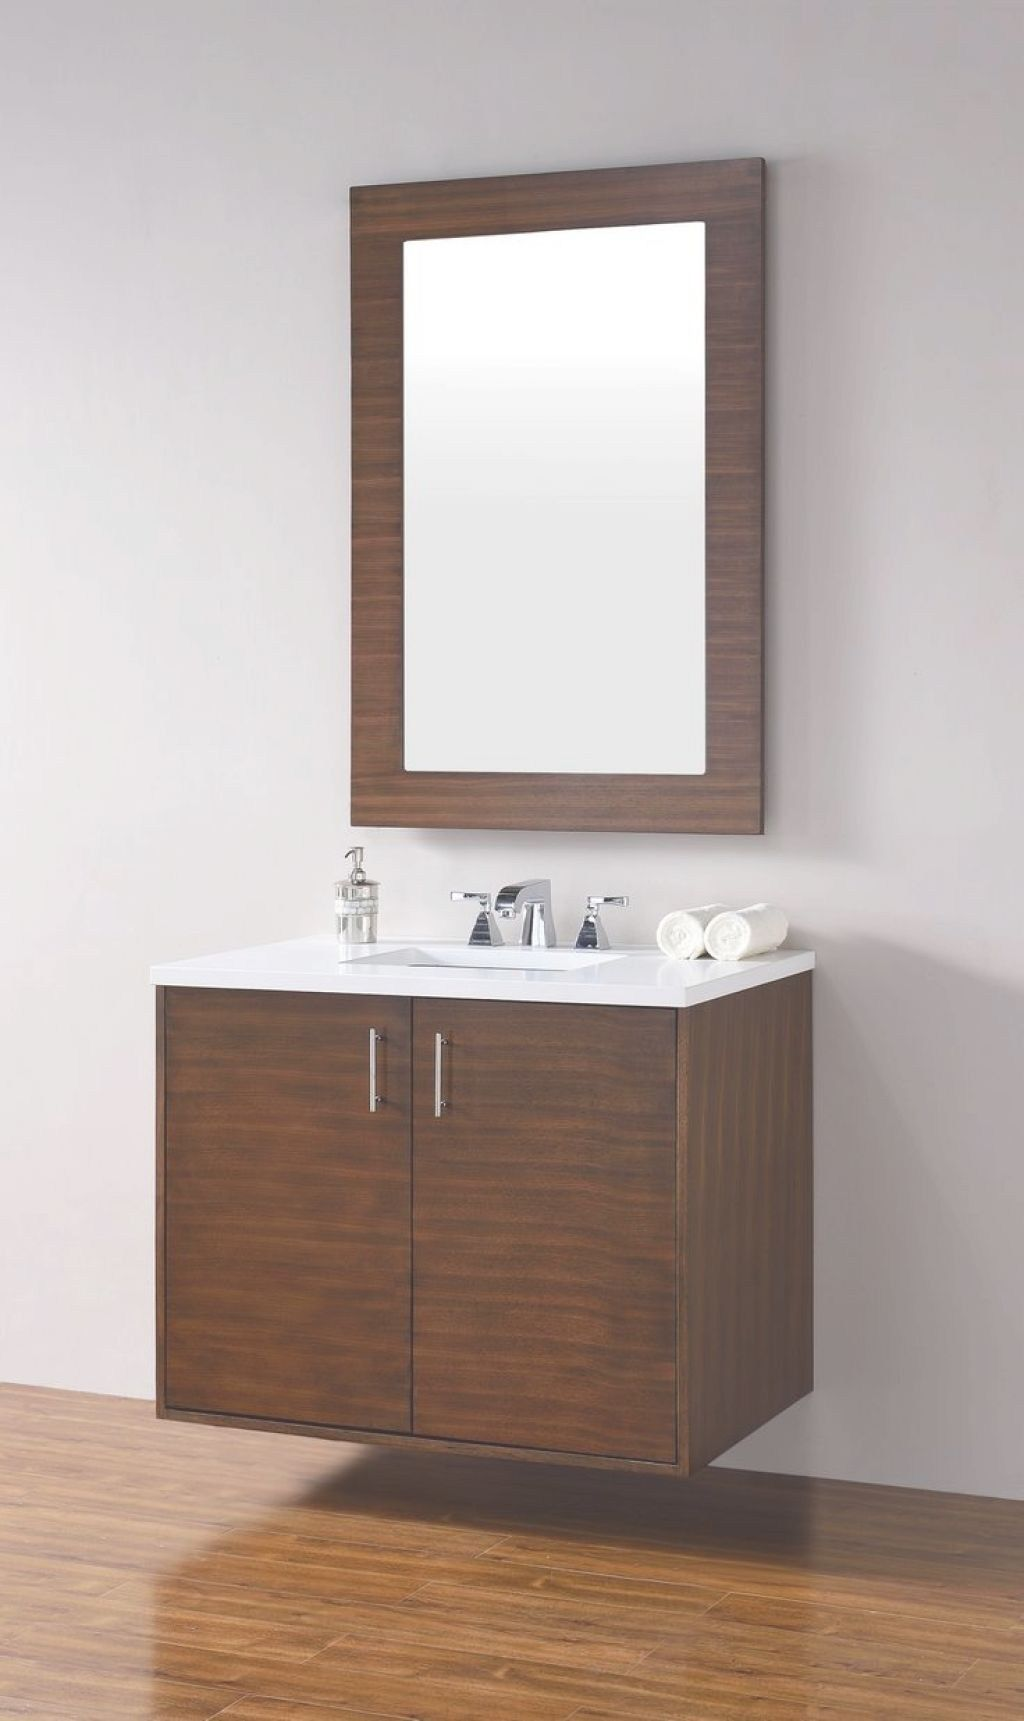 Bathroom cabinet ideas storage  relaxing bath spaces with wooden bathroom cabinets in